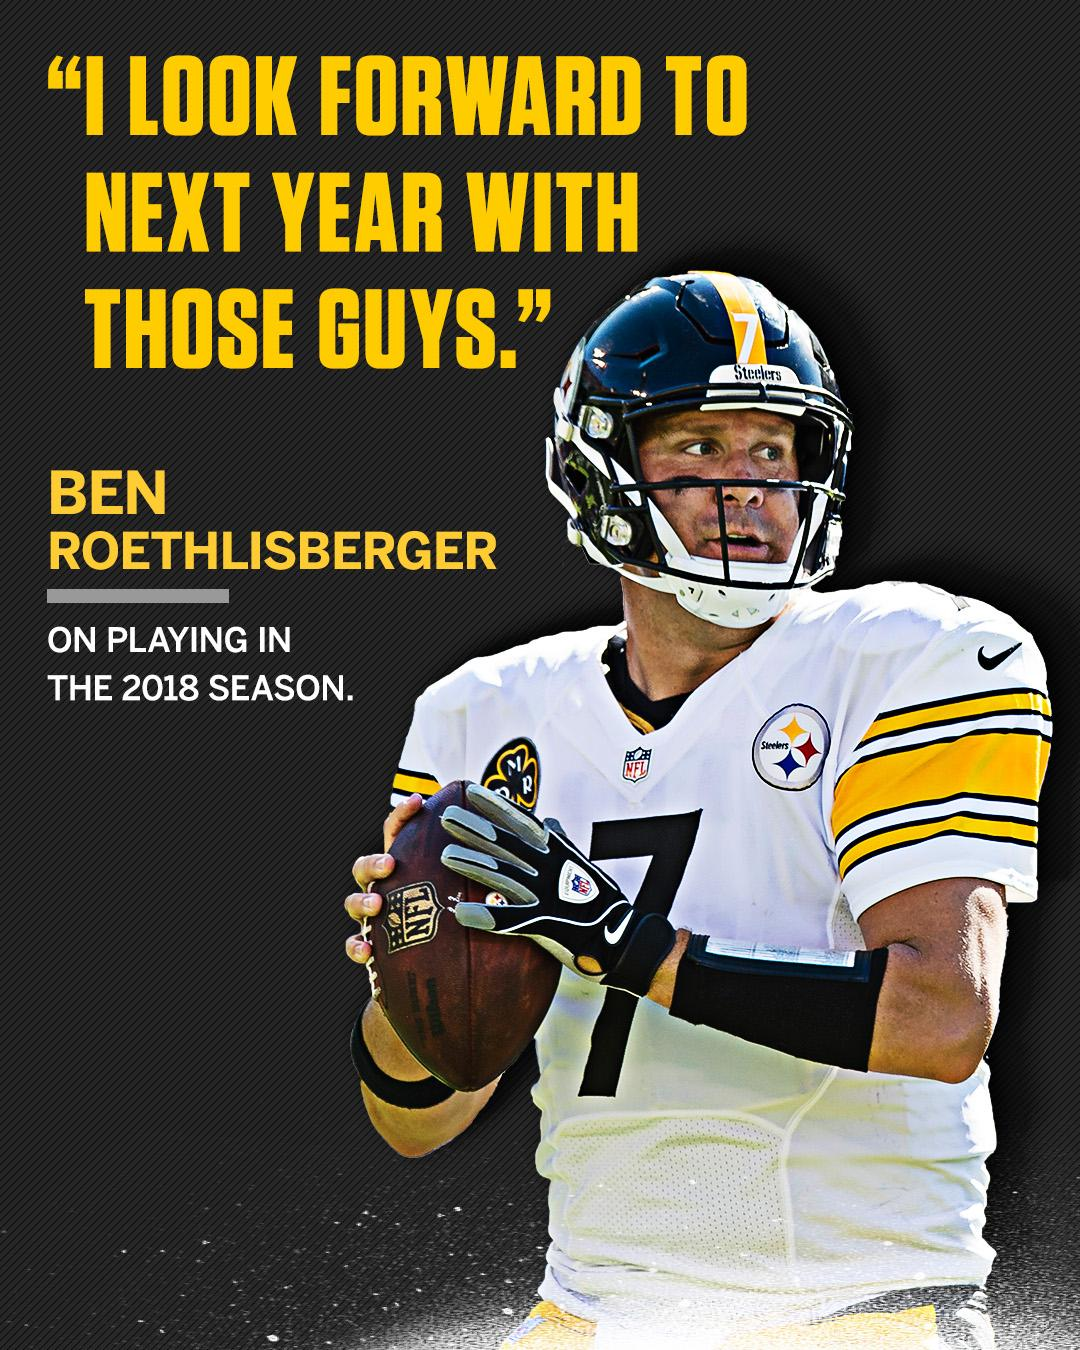 Big Ben says he plans on playing in 2018. https://t.co/ziCTwCt7zZ https://t.co/xAIGH7TKLY